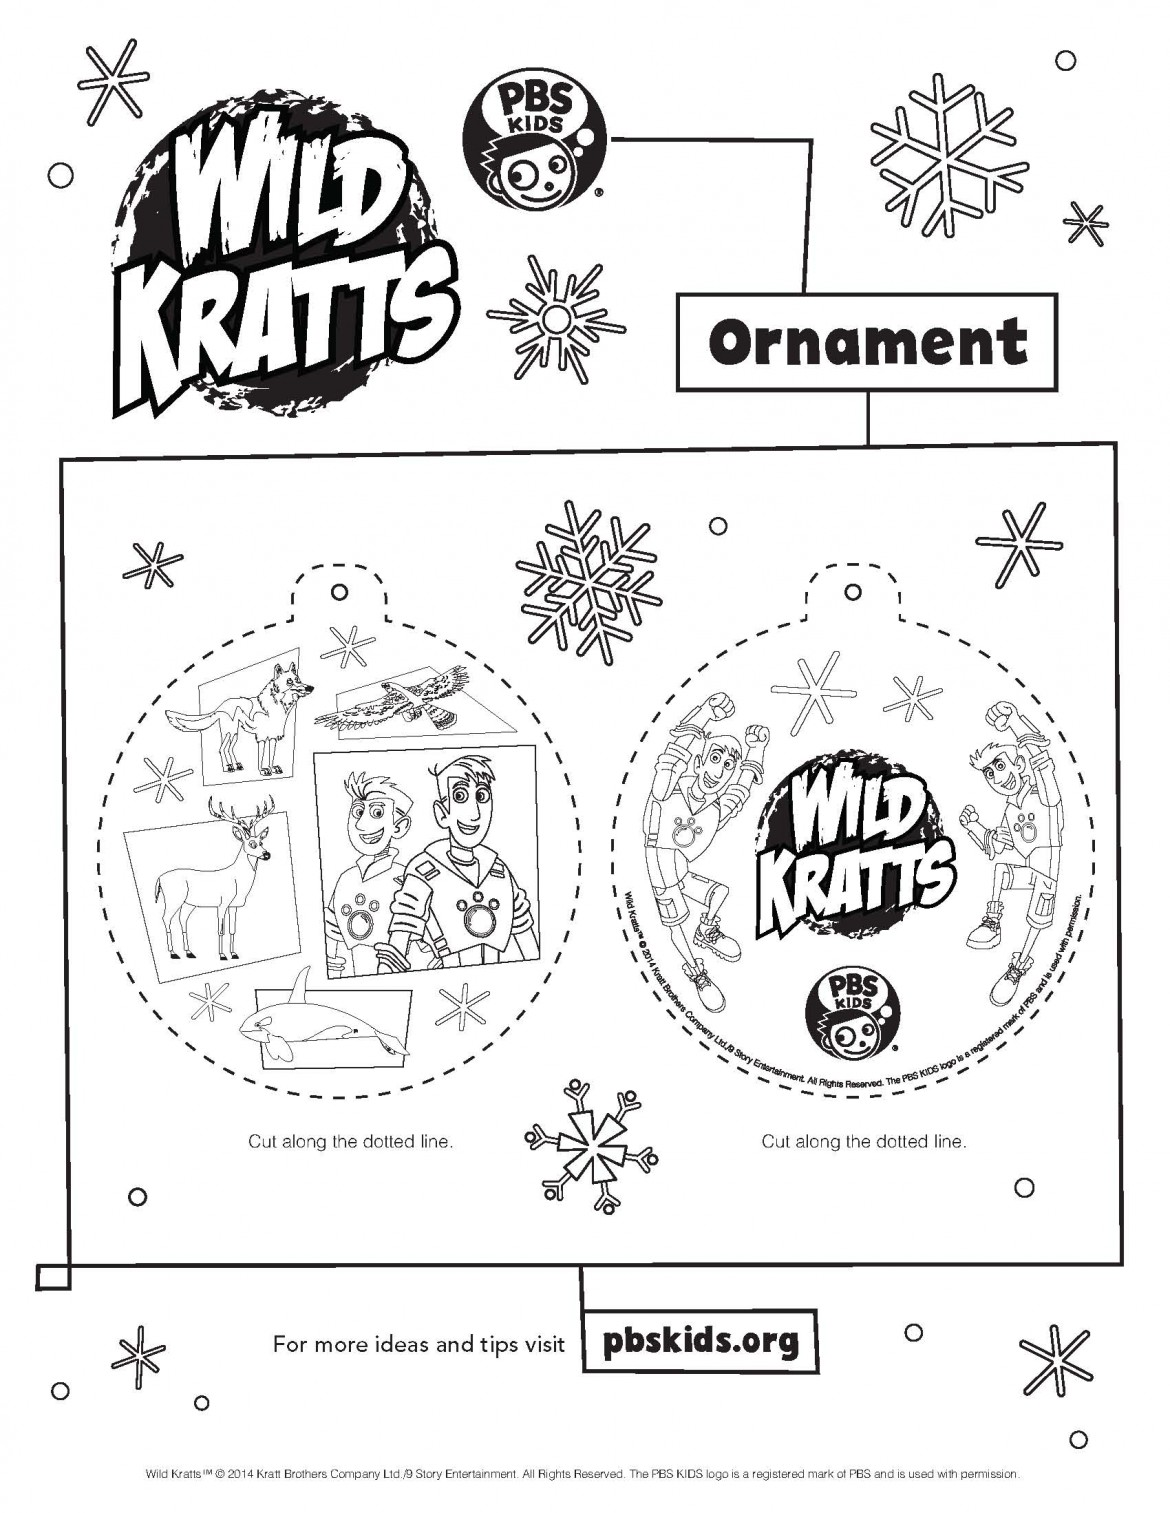 Wild-kratts-ornament_Page_2